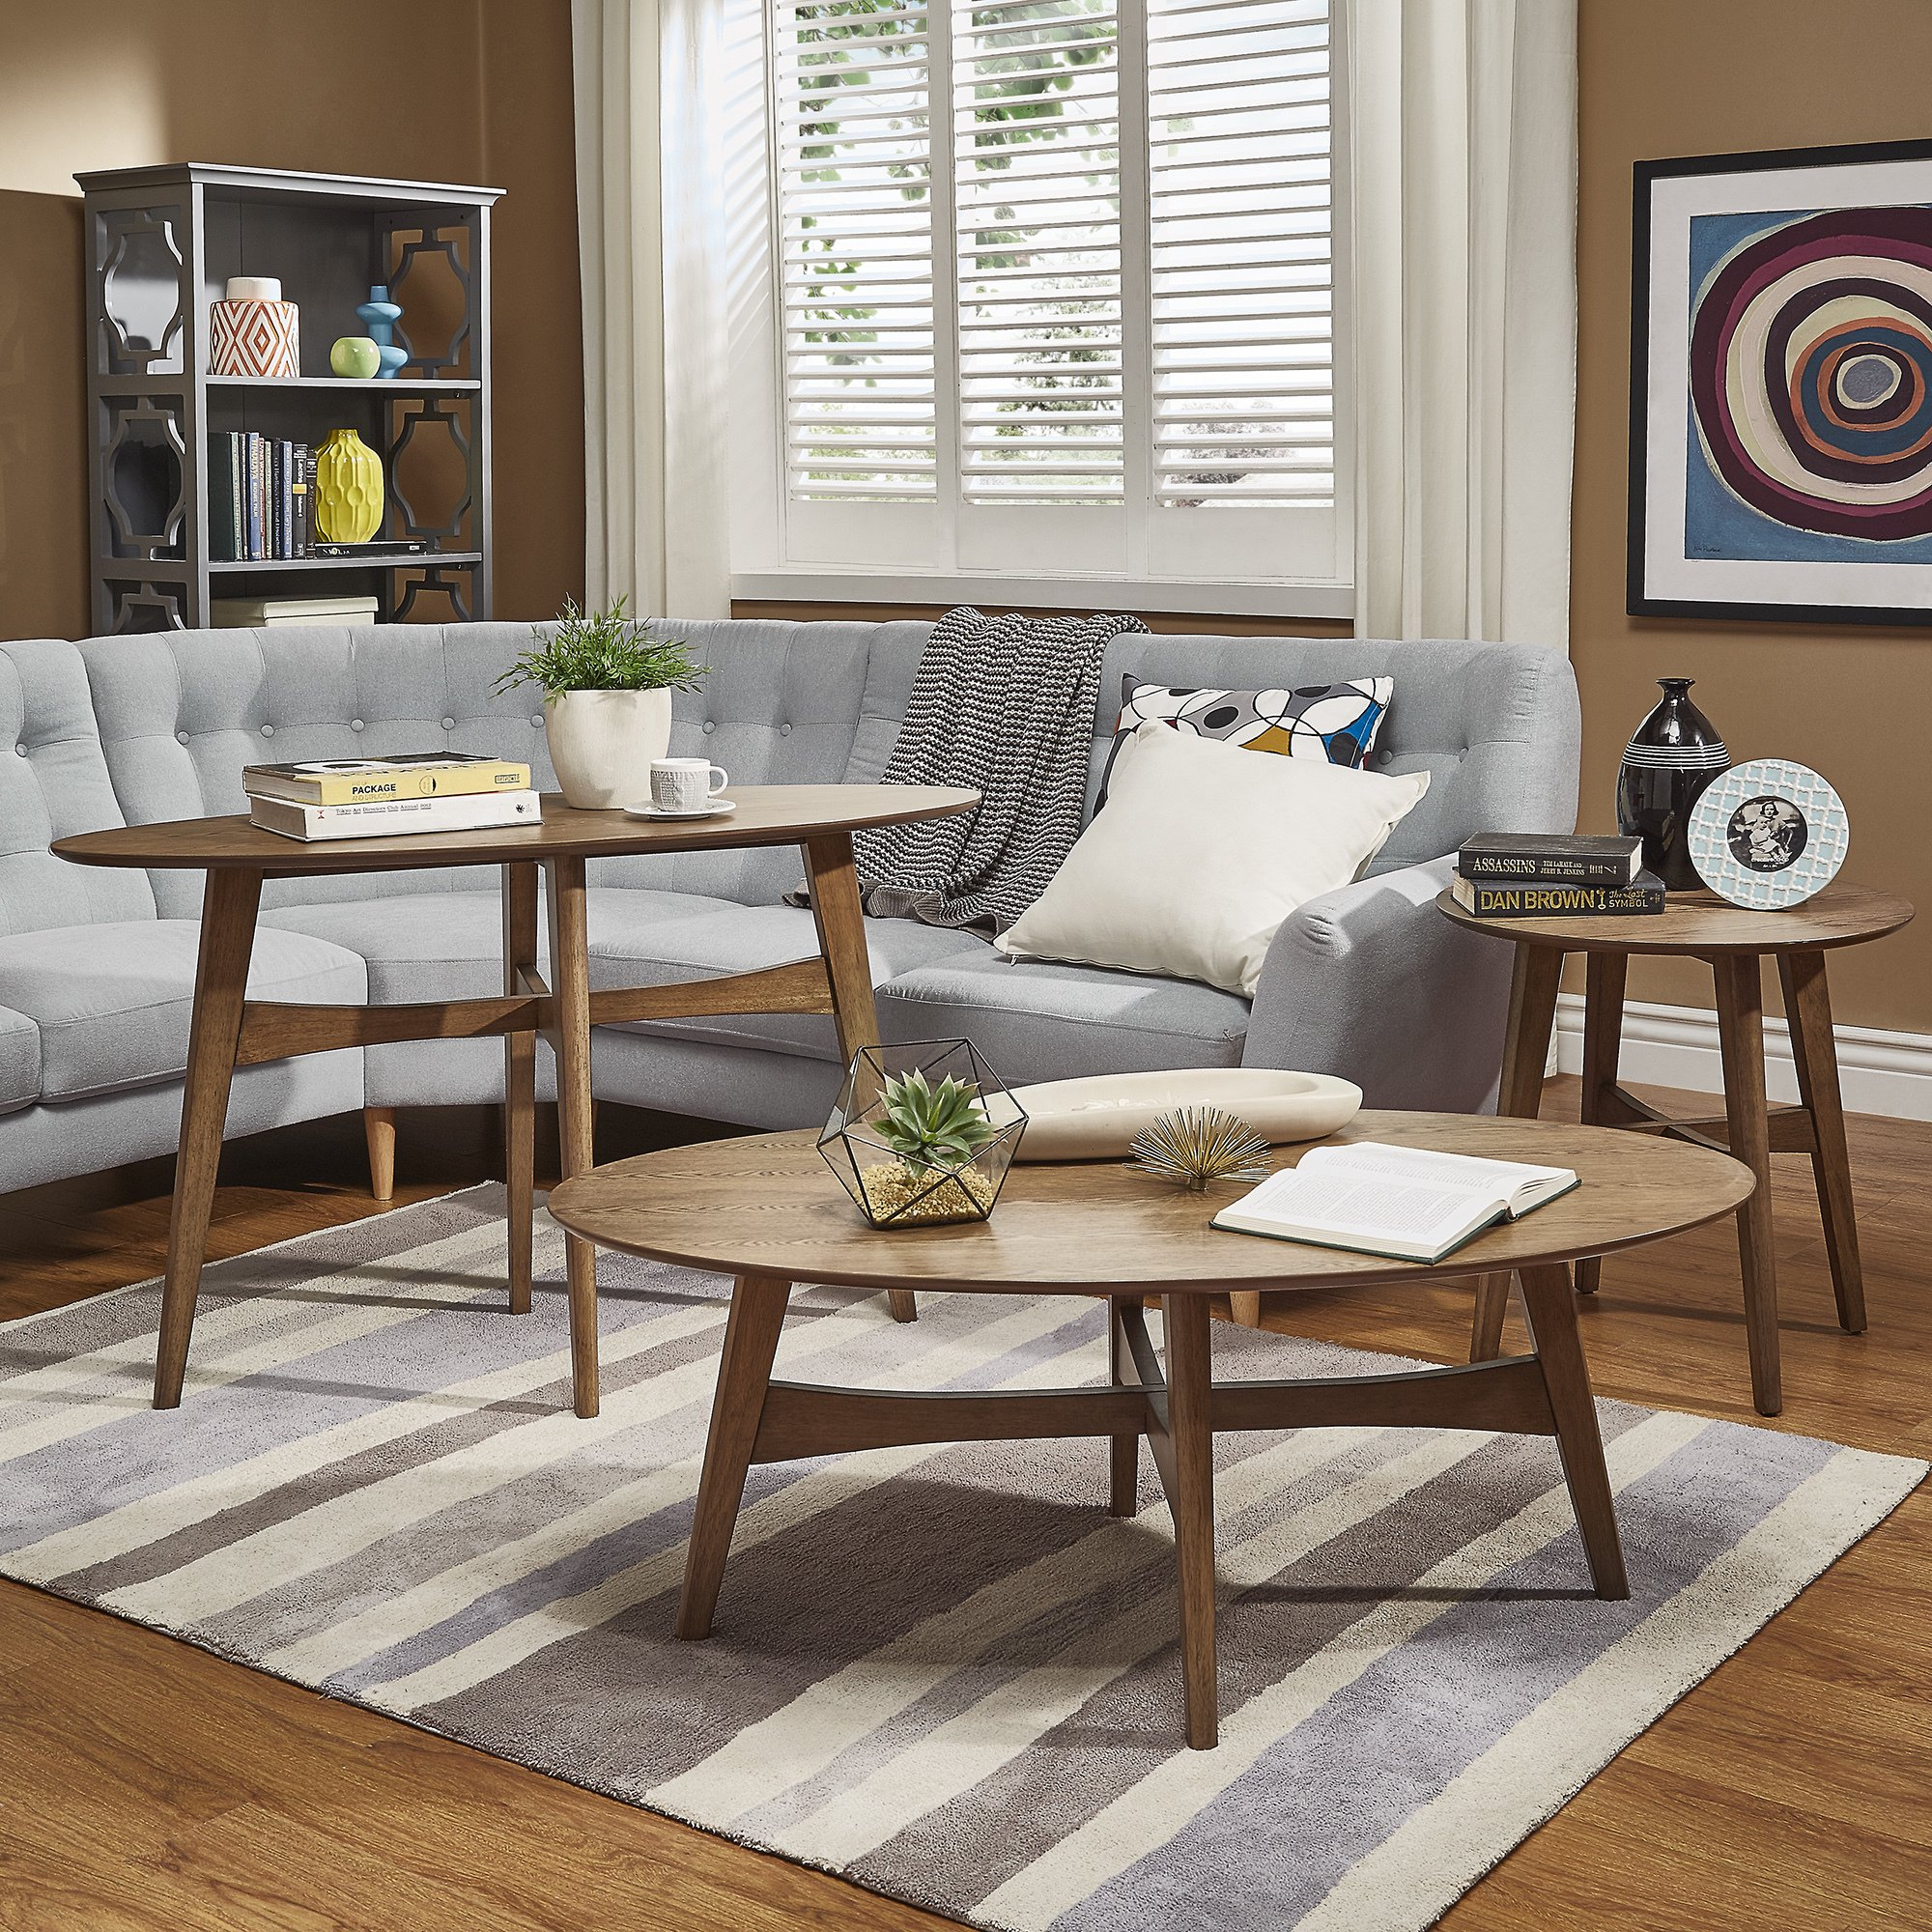 rona wood accent tables inspire modern free mid century living for room patio table chairs formal dining furniture tablecloth small round pub bistro sets glass couch ikea kids